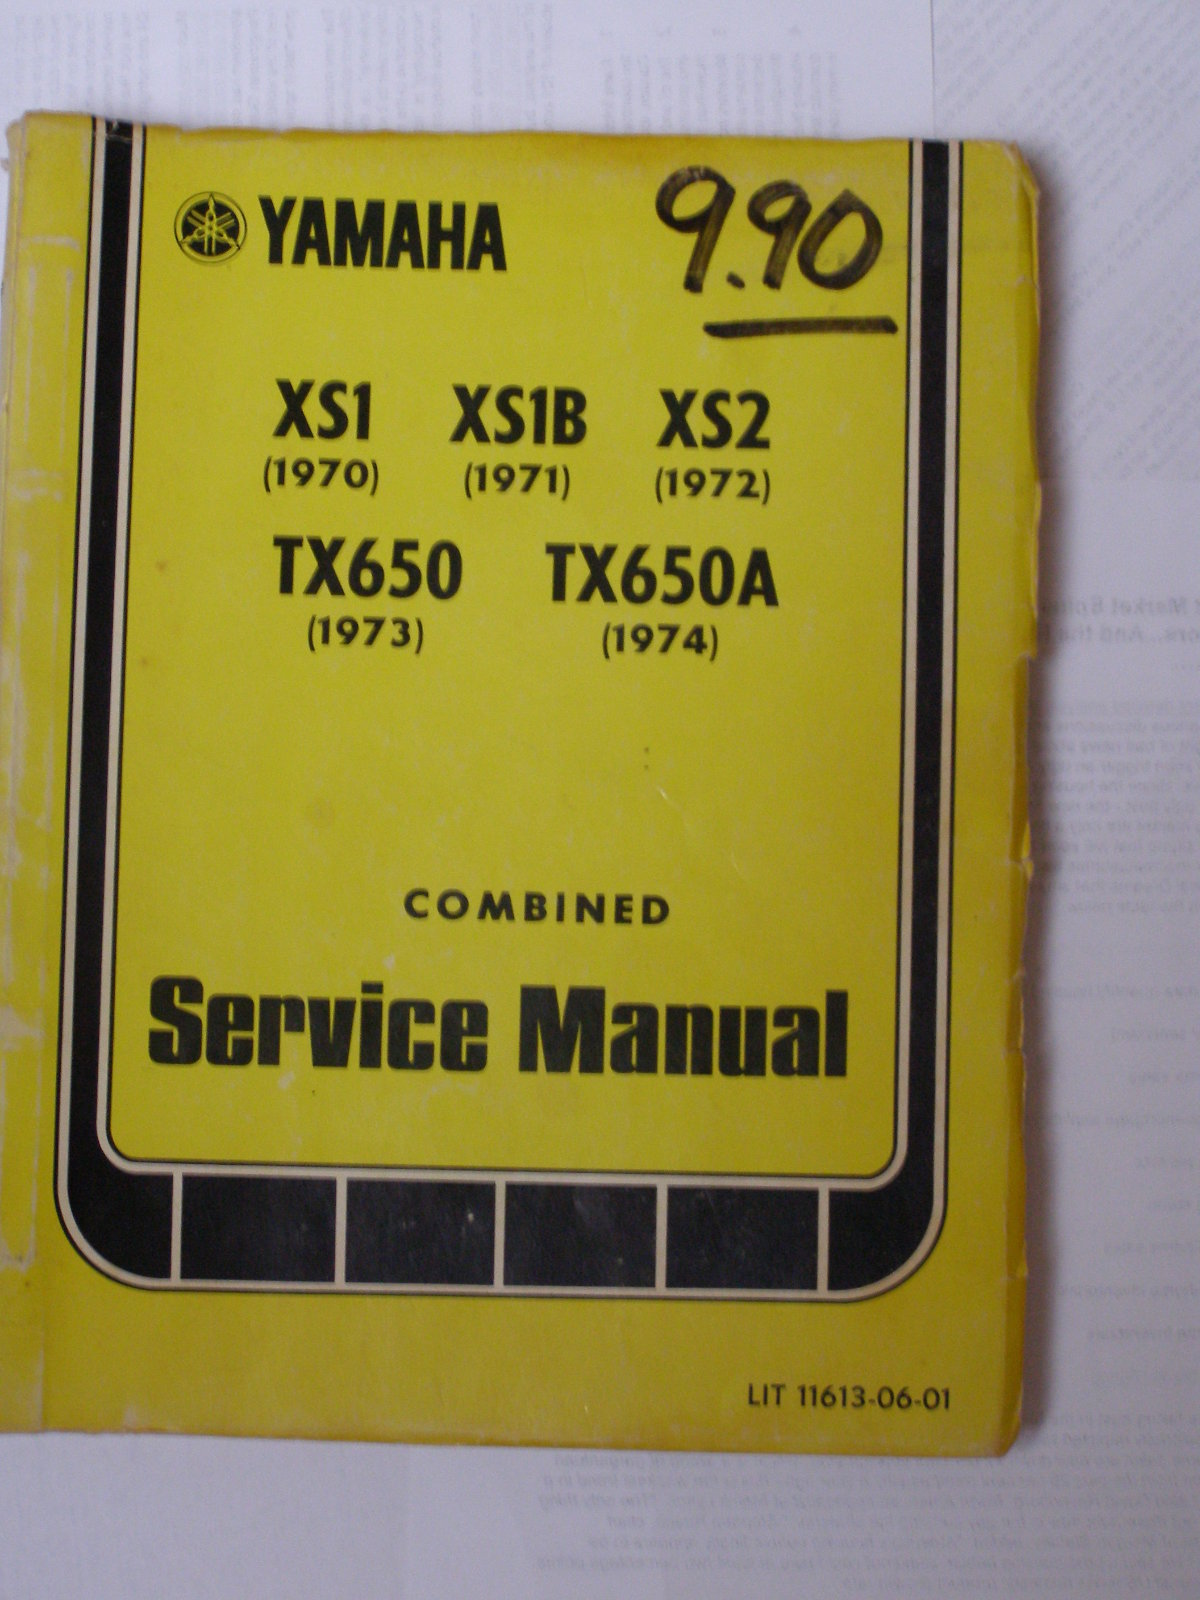 web xs650 xs1 xs2 tx650 tx650a service manual 1970 1974 thexscafe XS2 Bow String at gsmportal.co